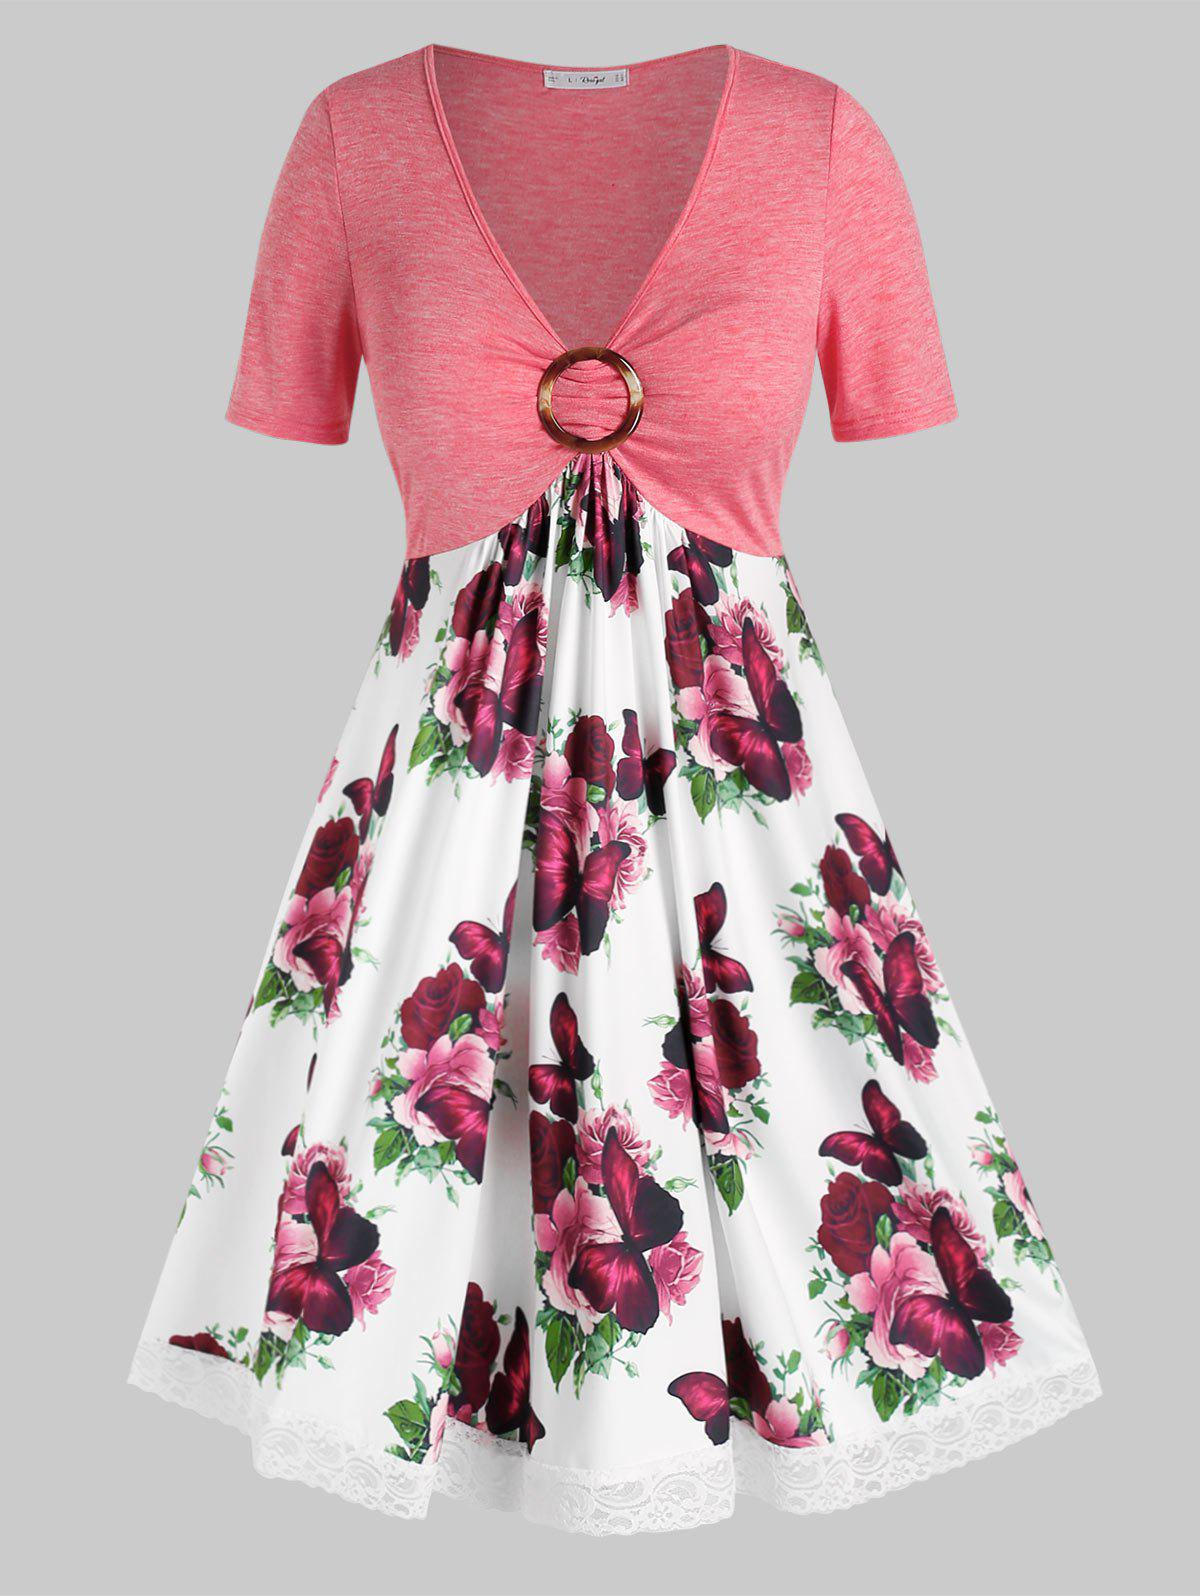 Discount Plus Size Flower Butterfly Print Lace Insert O Ring Dress